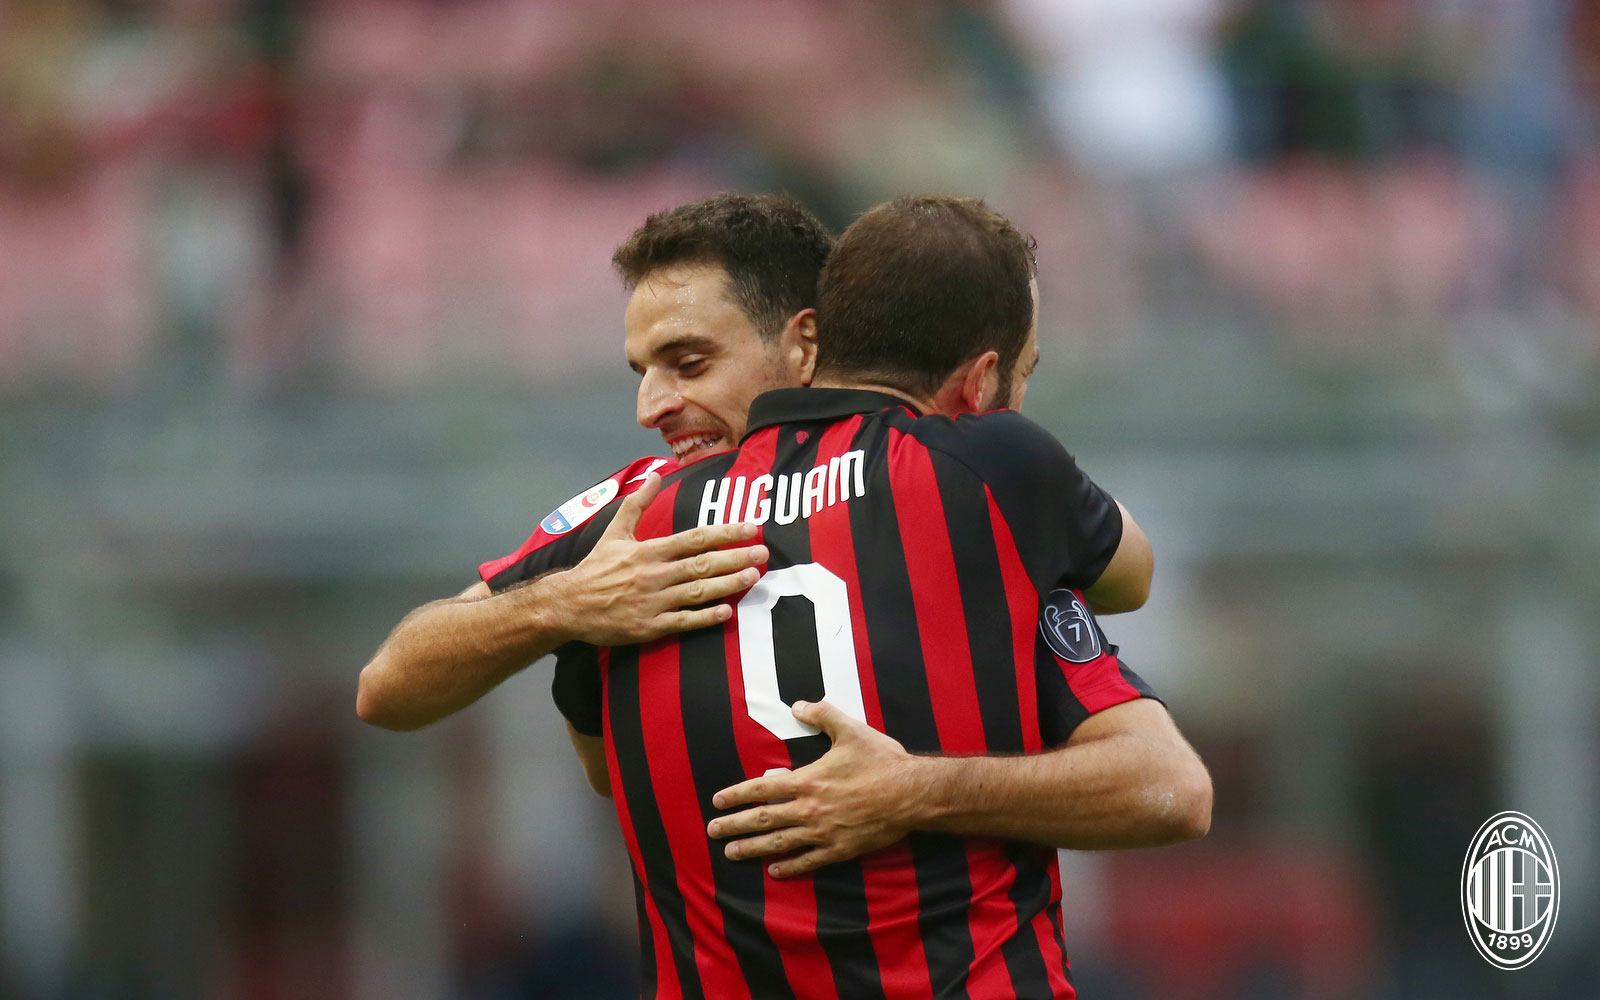 Giacomo Bonaventura and Gonzalo Higuain celebrating during Milan-Chievo at Stadio San Siro on October 7, 2018. (@acmilan.com)